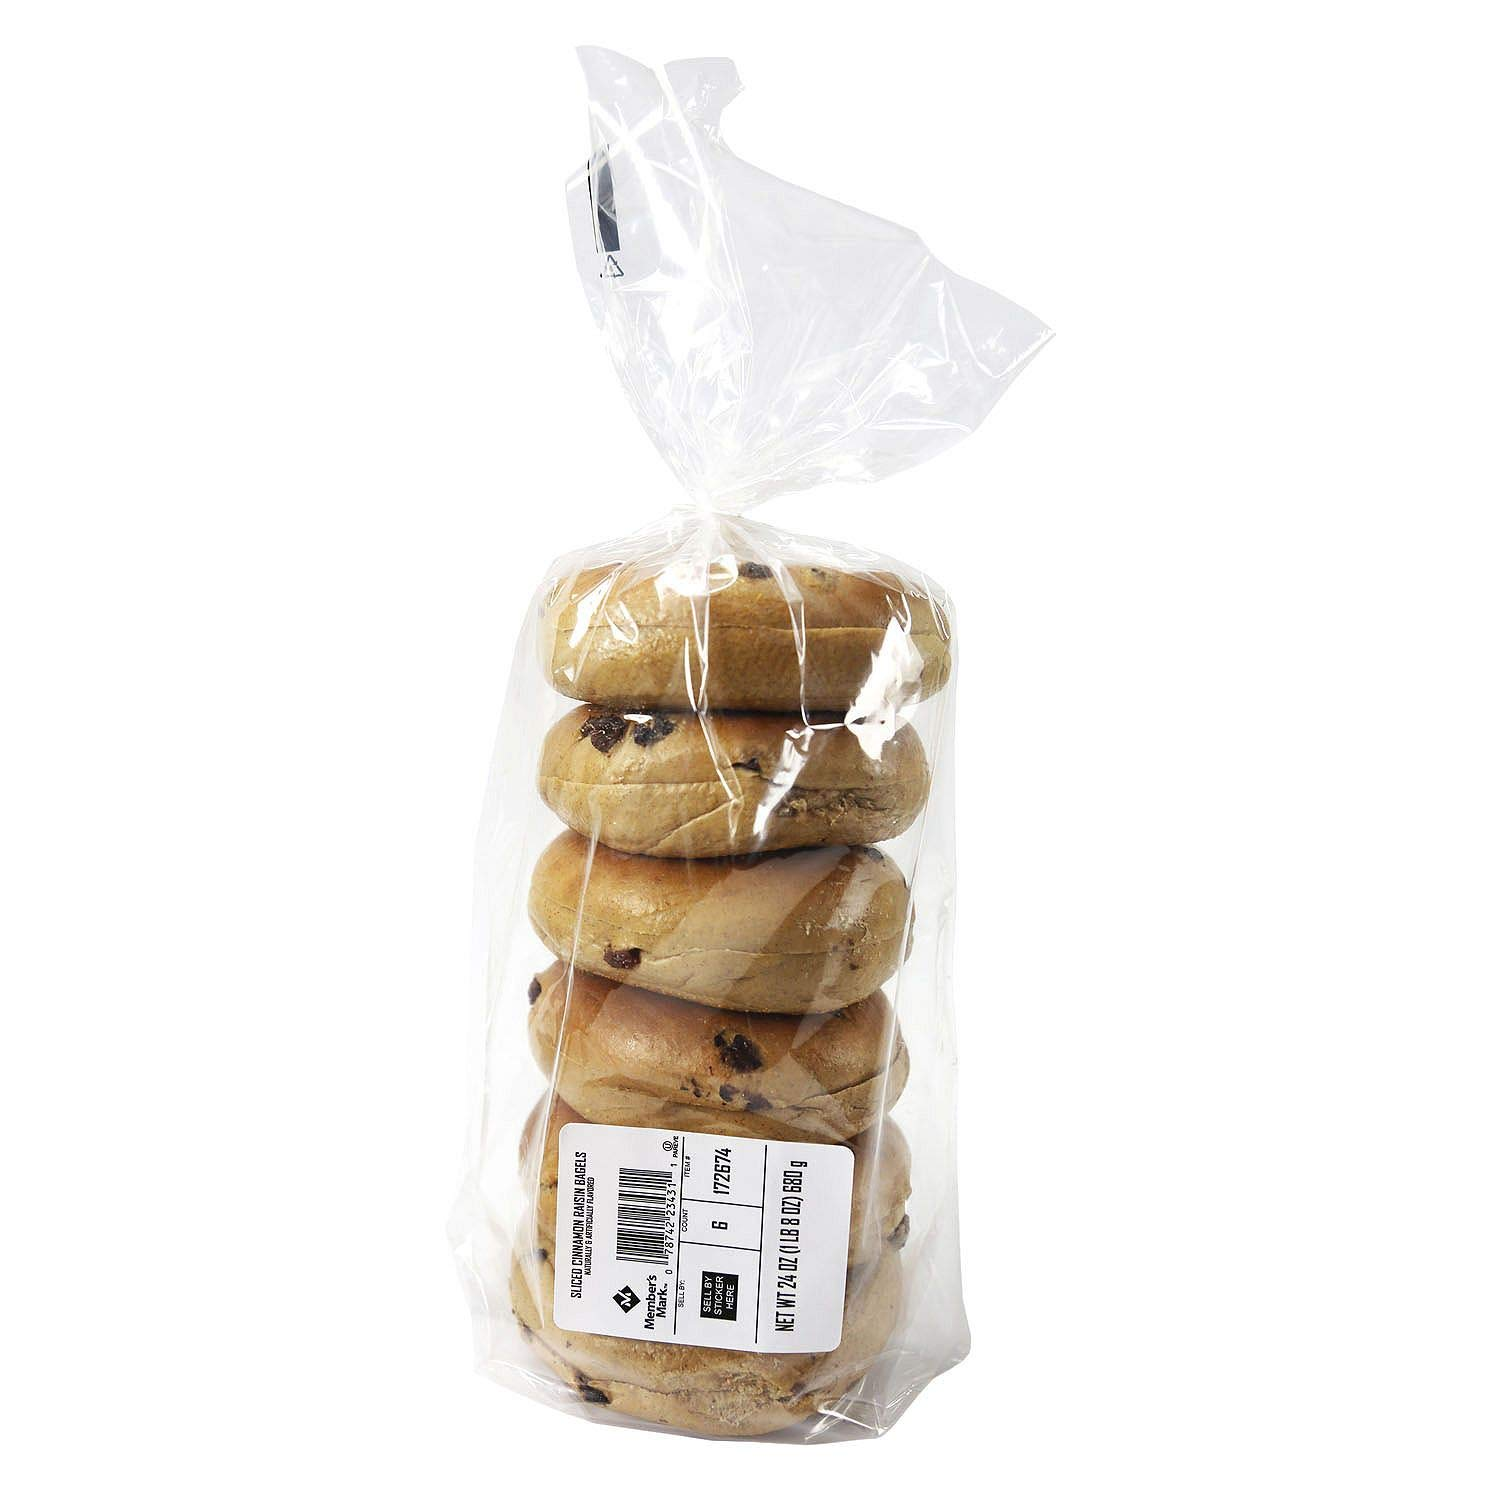 Member's Mark Cinnamon Raisin Bagels 6 ct. (pack of 3) A1